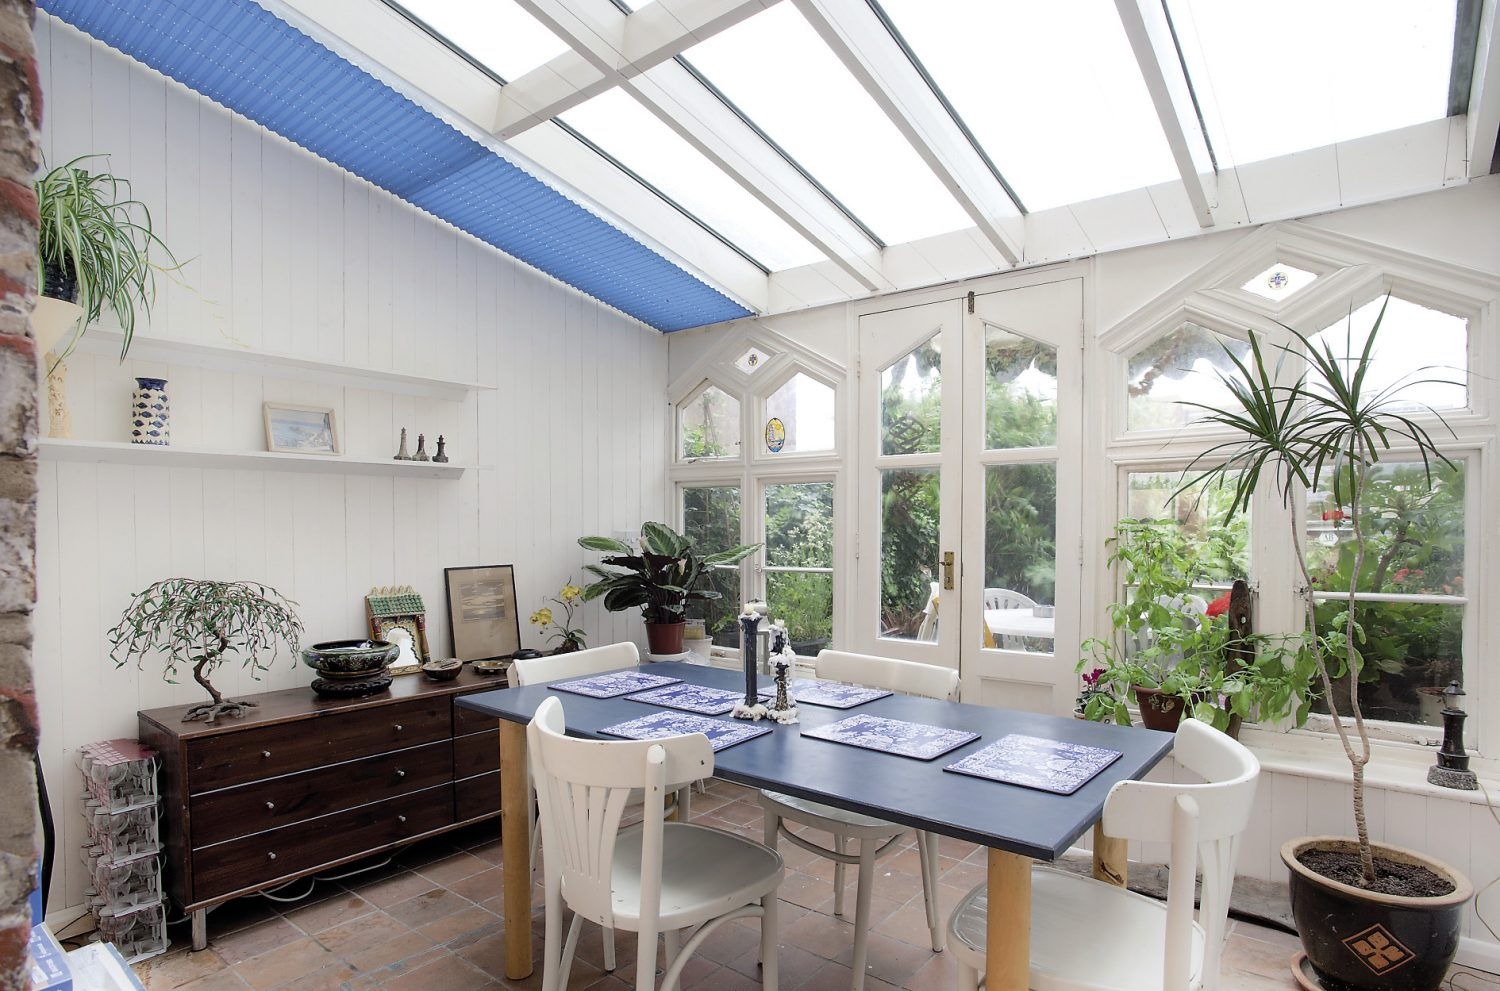 Alastair found the Gothic windows in the conservatory at an architectural salvage yard and designed the room around them